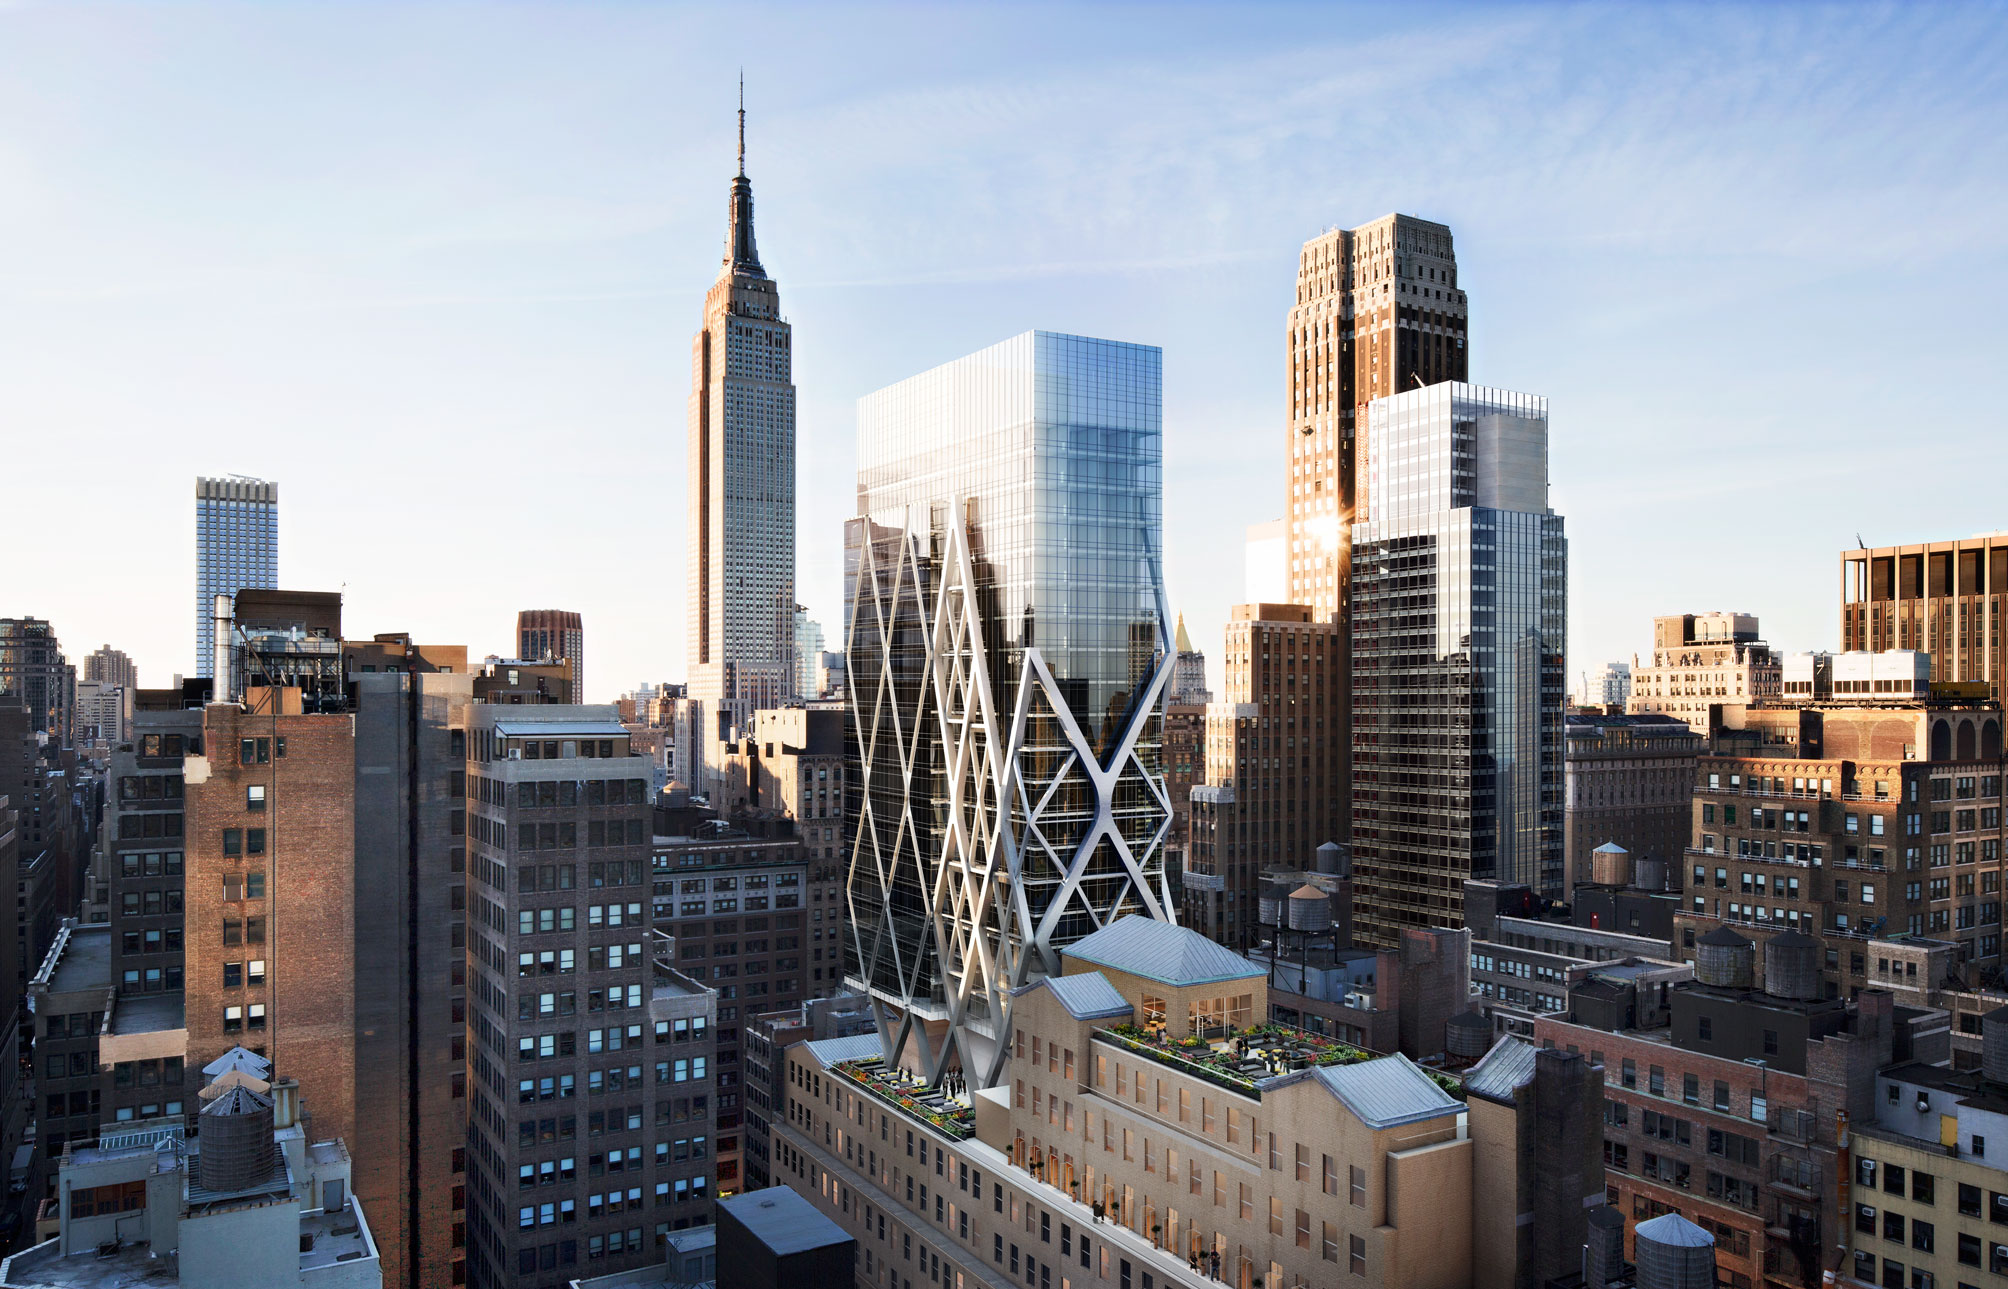 230-west-36th-VOA-Architects-Garment-District-Midtown-offices-Midtown-South-Manhattan-2.jpg